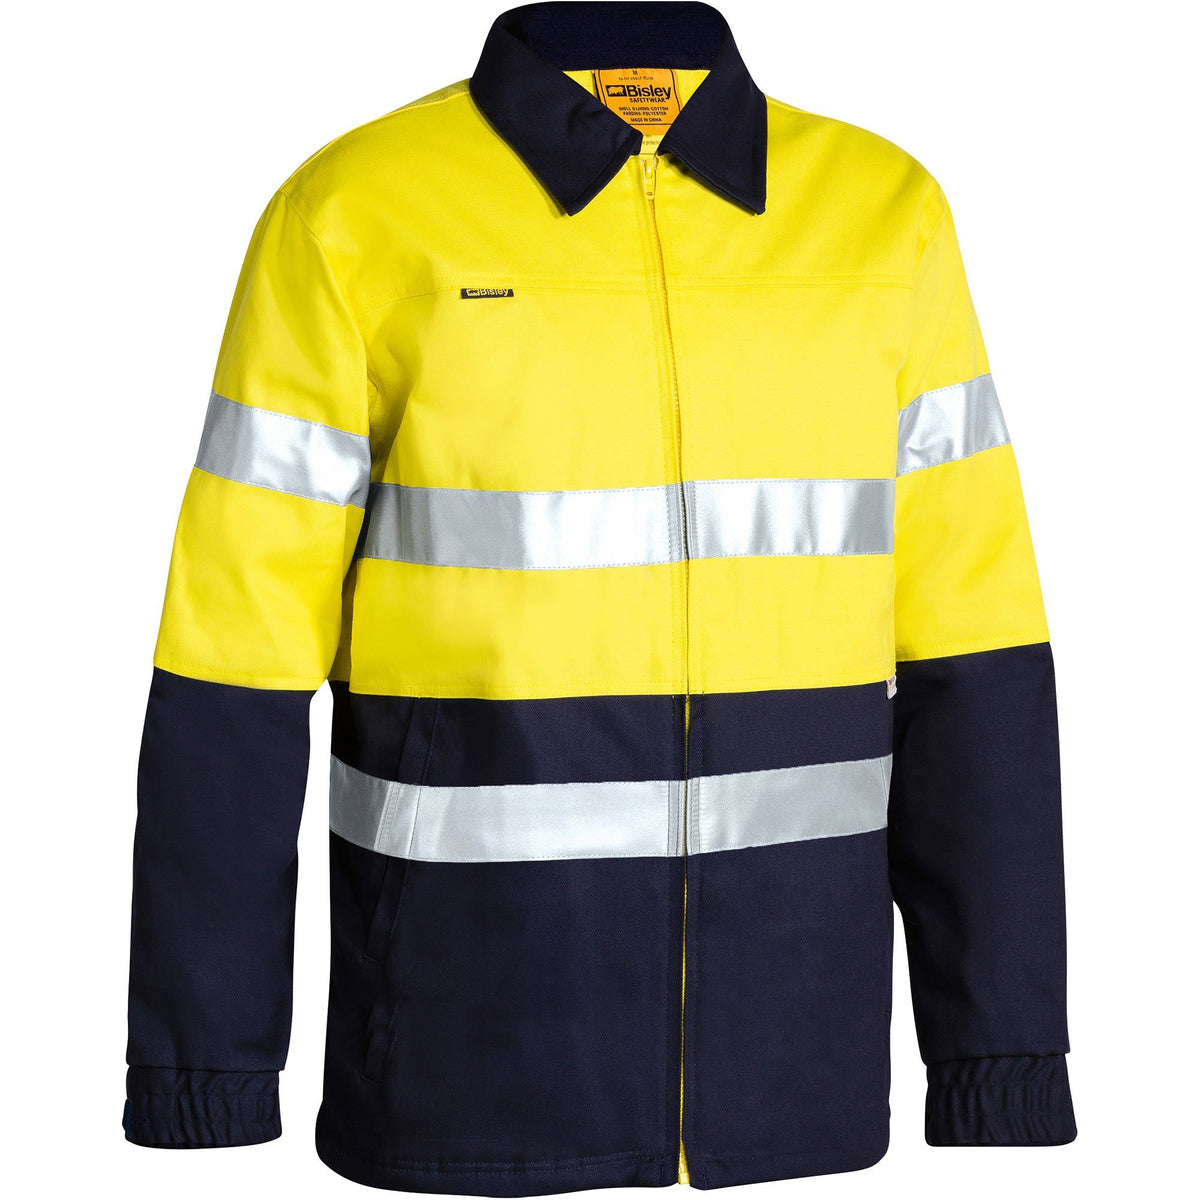 Bisley - 2 Tone Hi Vis Drill Jacket 3M Reflective Tape